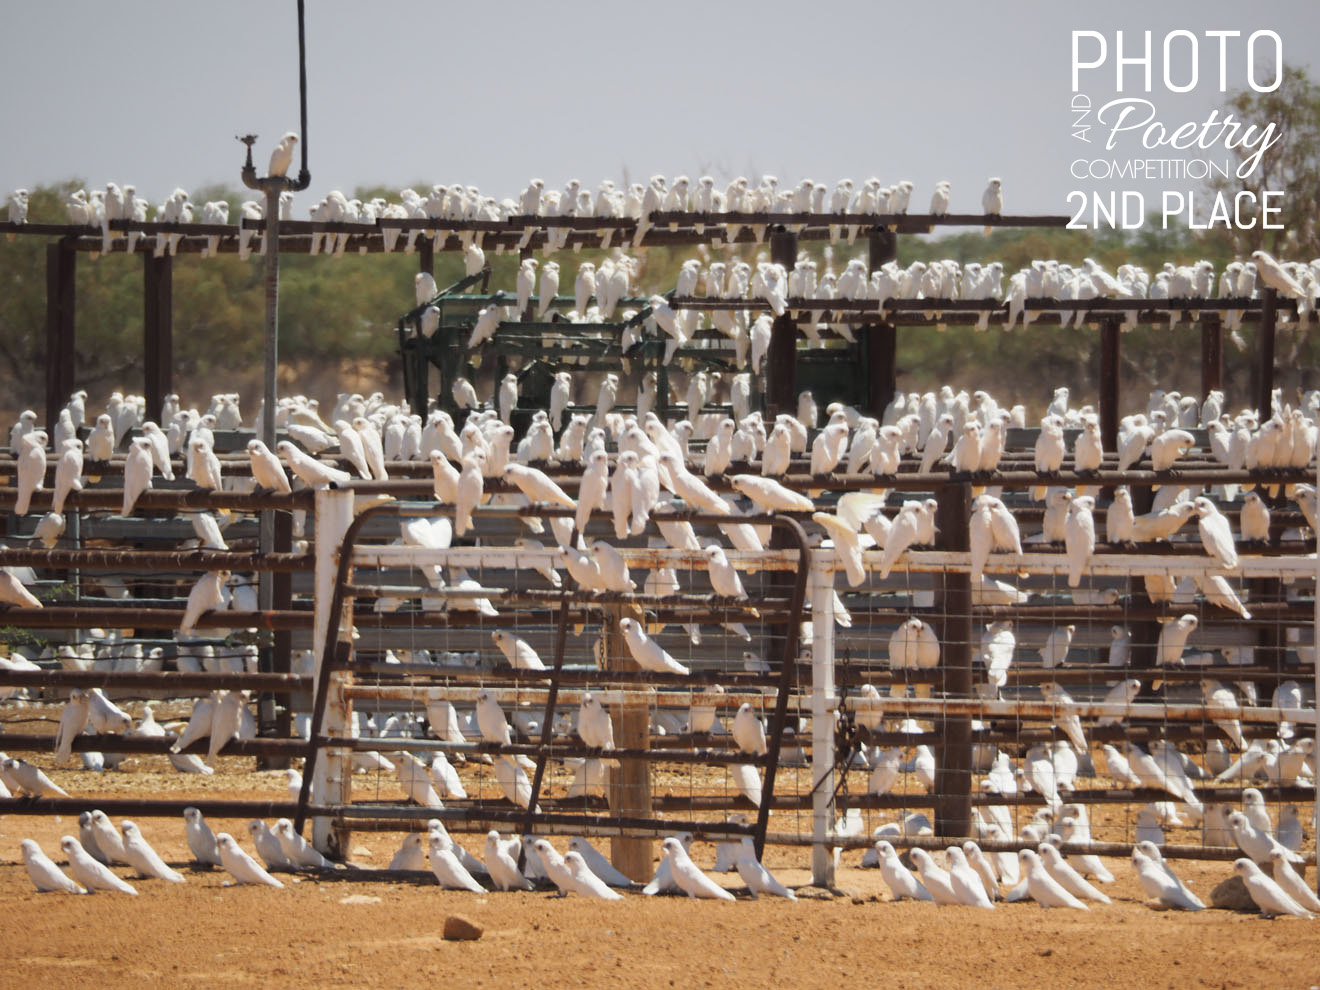 Corellas conference - A conference of corellas who came from far and wide. The 'twitter sphere' was #busy as they shared laughter and stories! They are #bettertogether creating a noise and flurry to be reckoned with. EMILY SAURMAN, Broken Hill, NSW